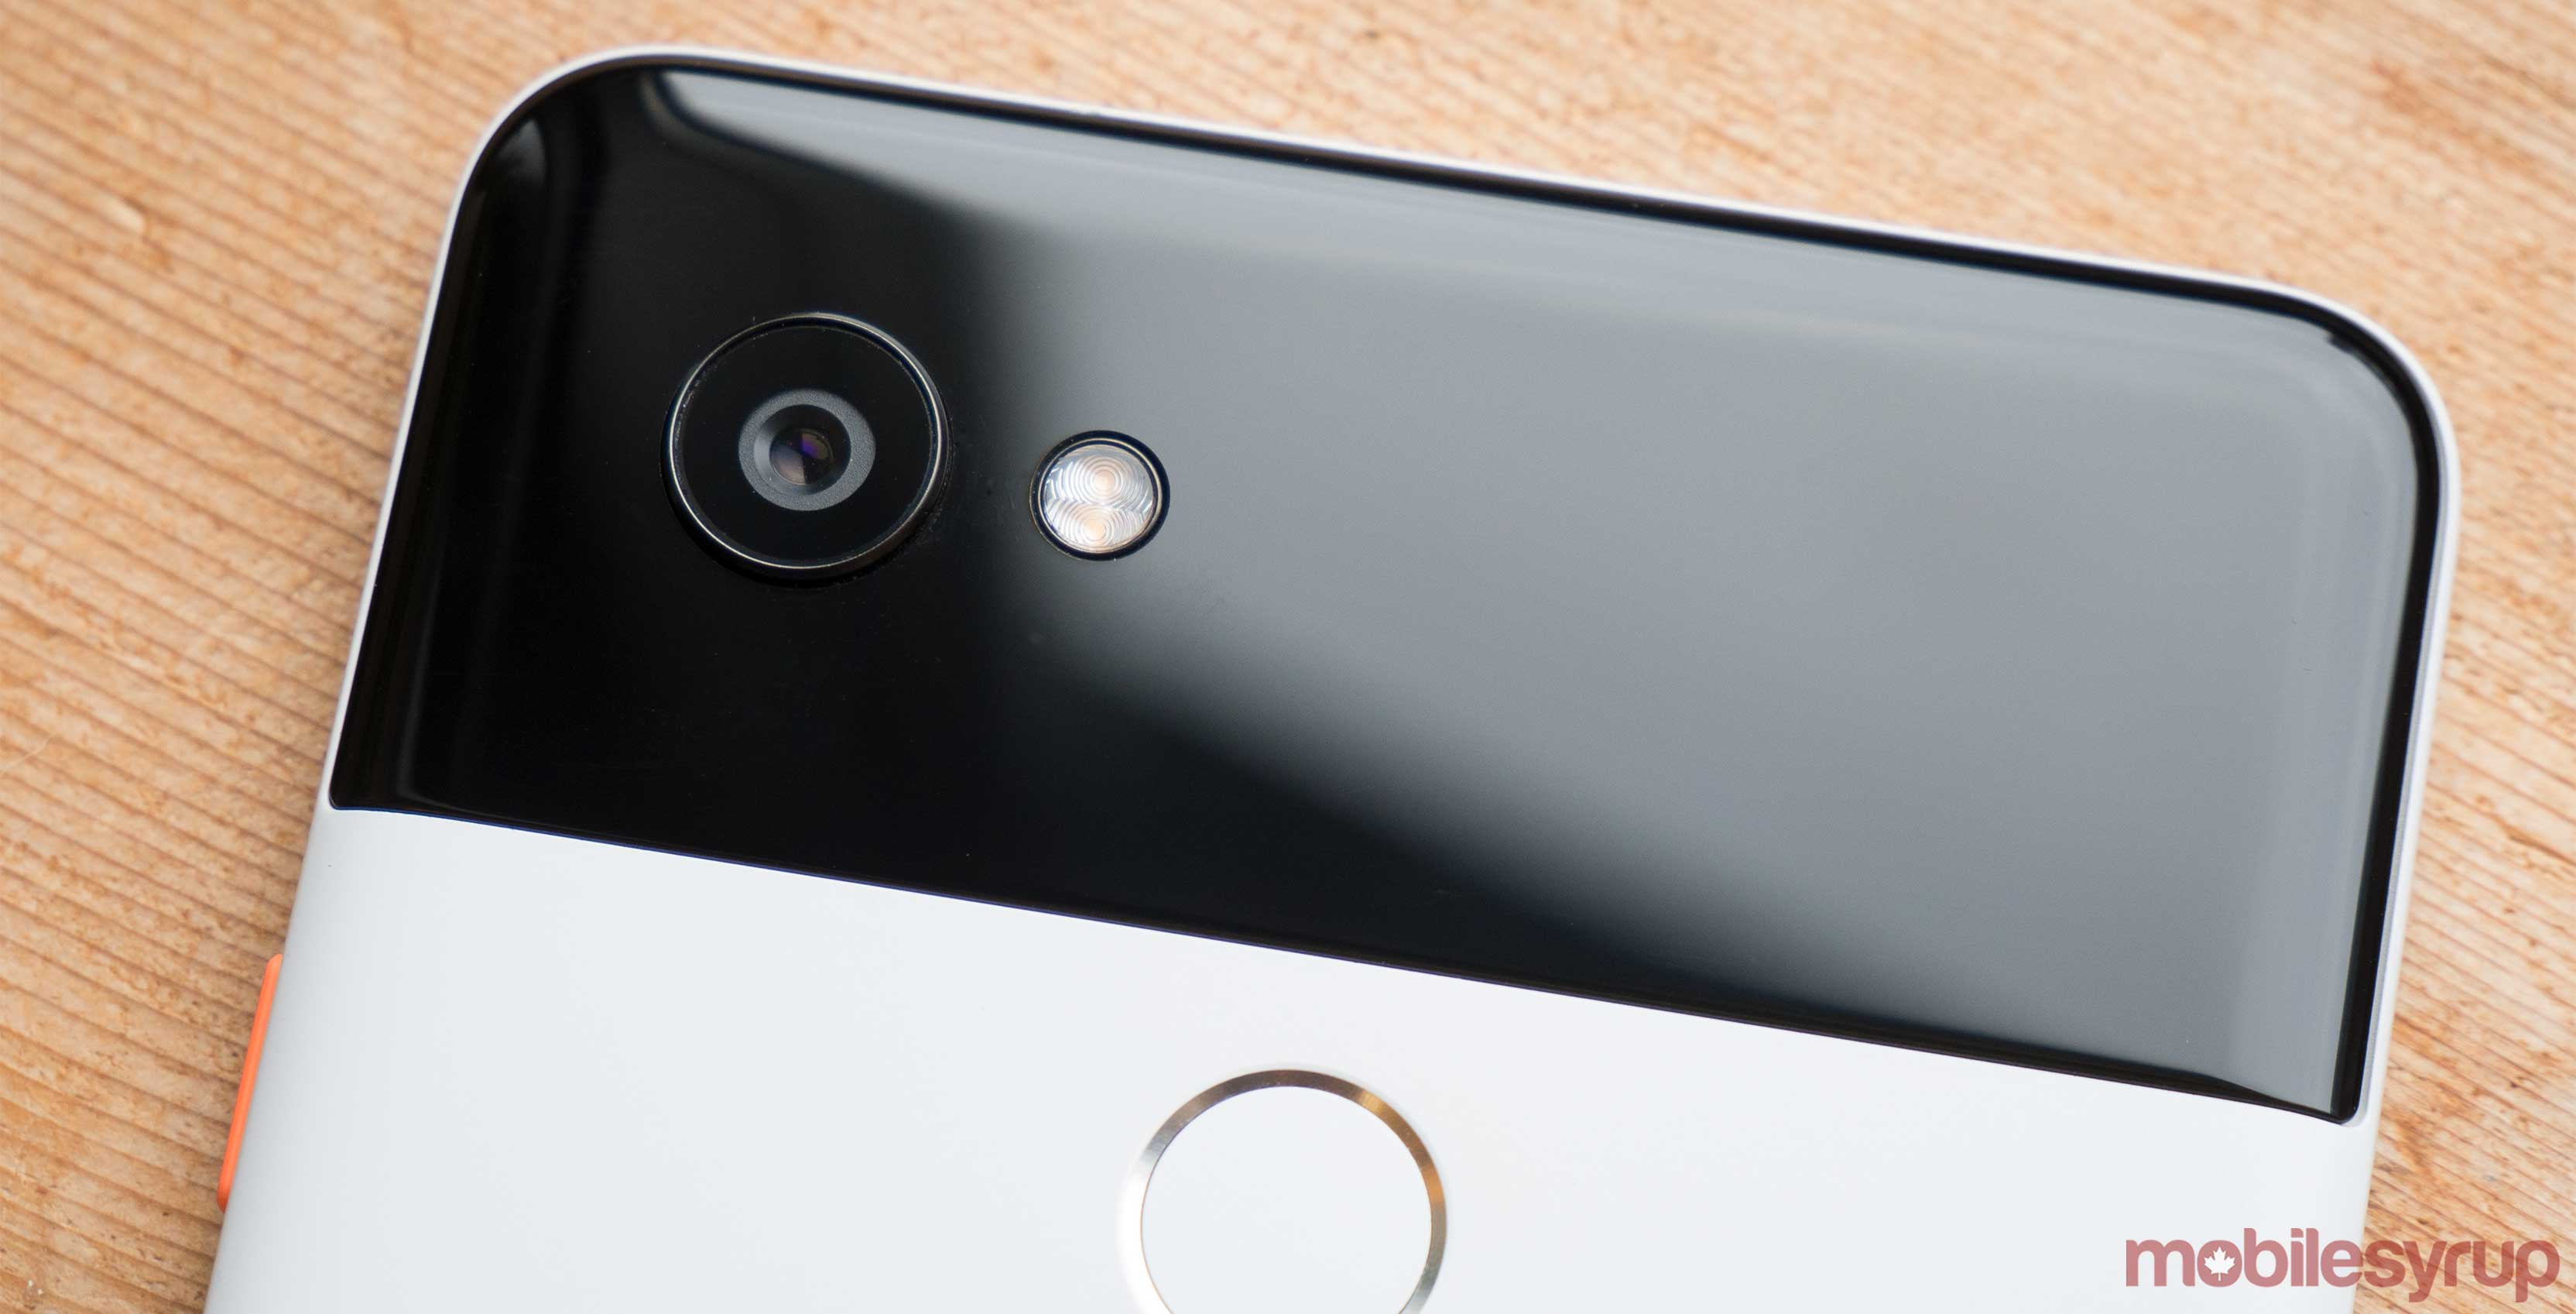 Pixel 3 XL will feature 6 7-inch display, 3,430mAh battery: leaked